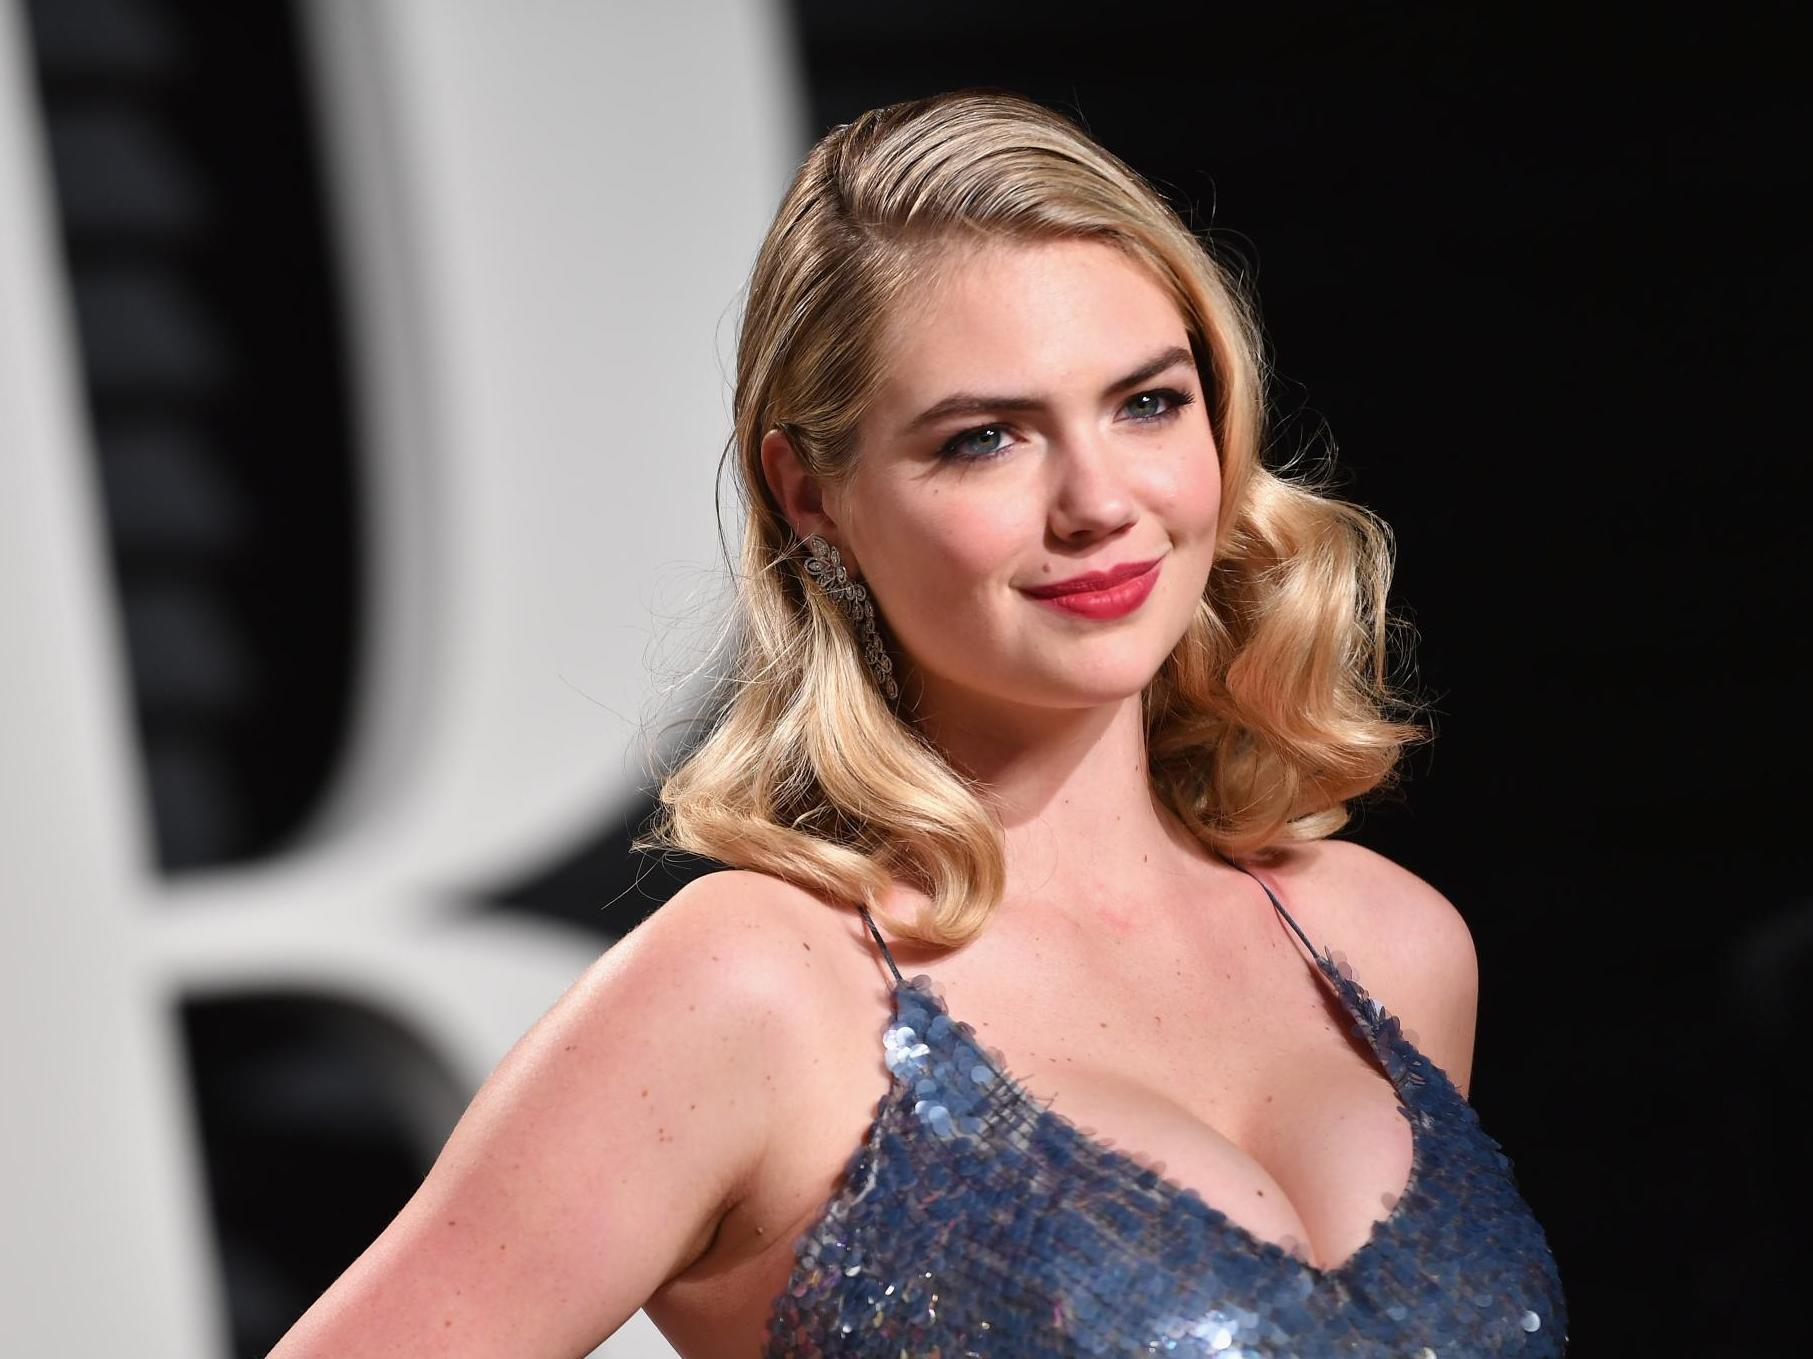 Kate Upton confronted by animal rights activists after backlash over Canada Goose partnership